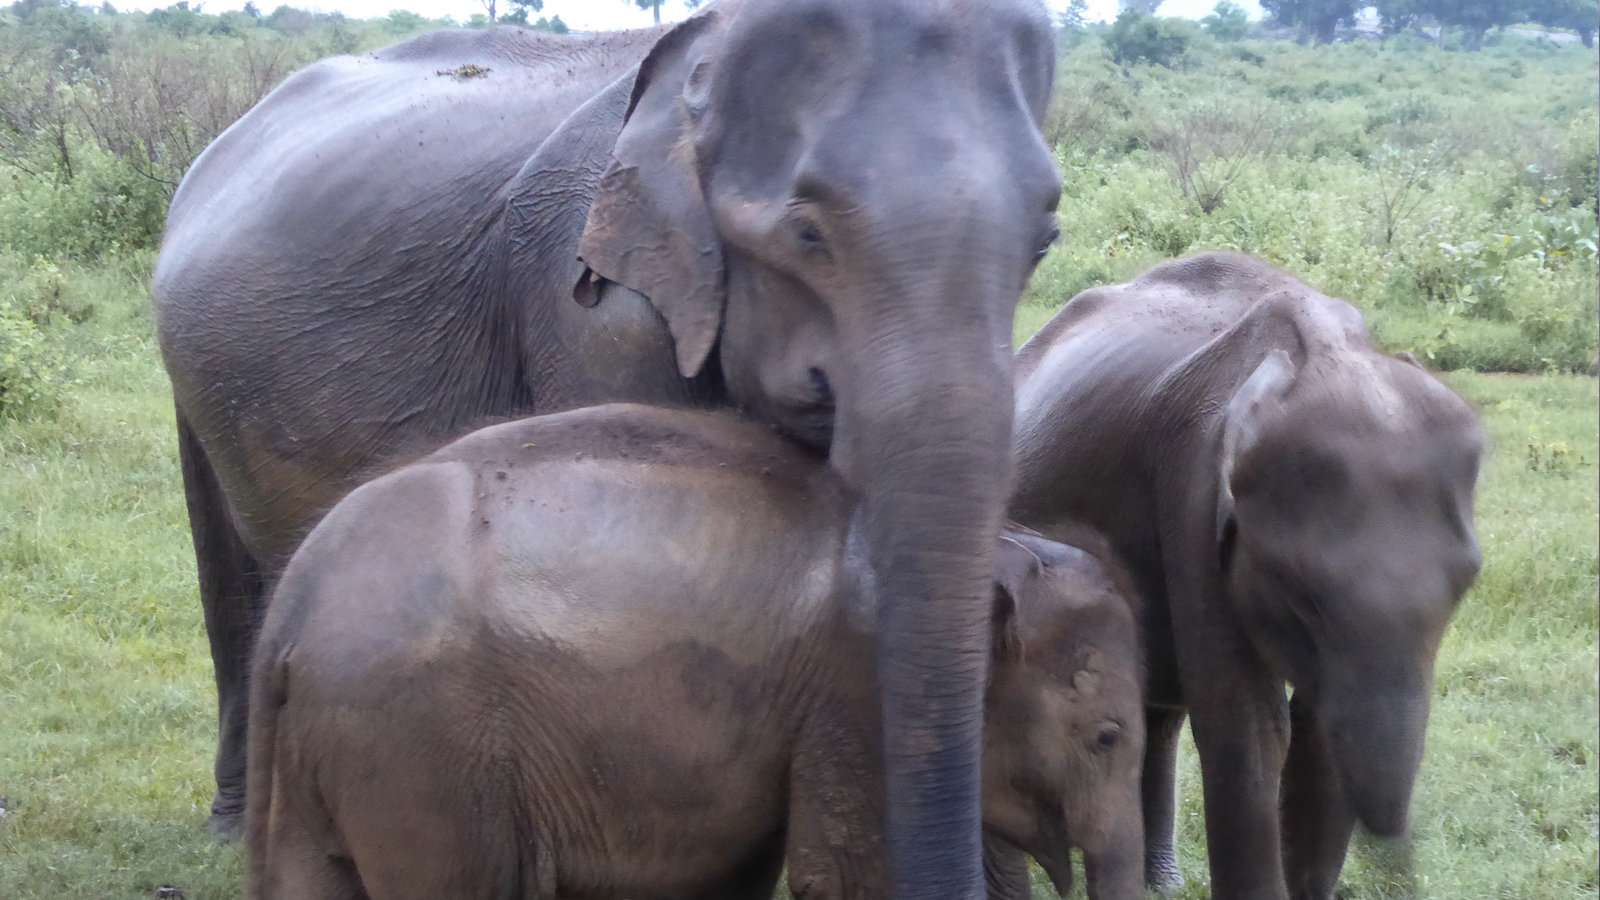 Udawalawe National Park is the best place to see elephants in Sri Lanka